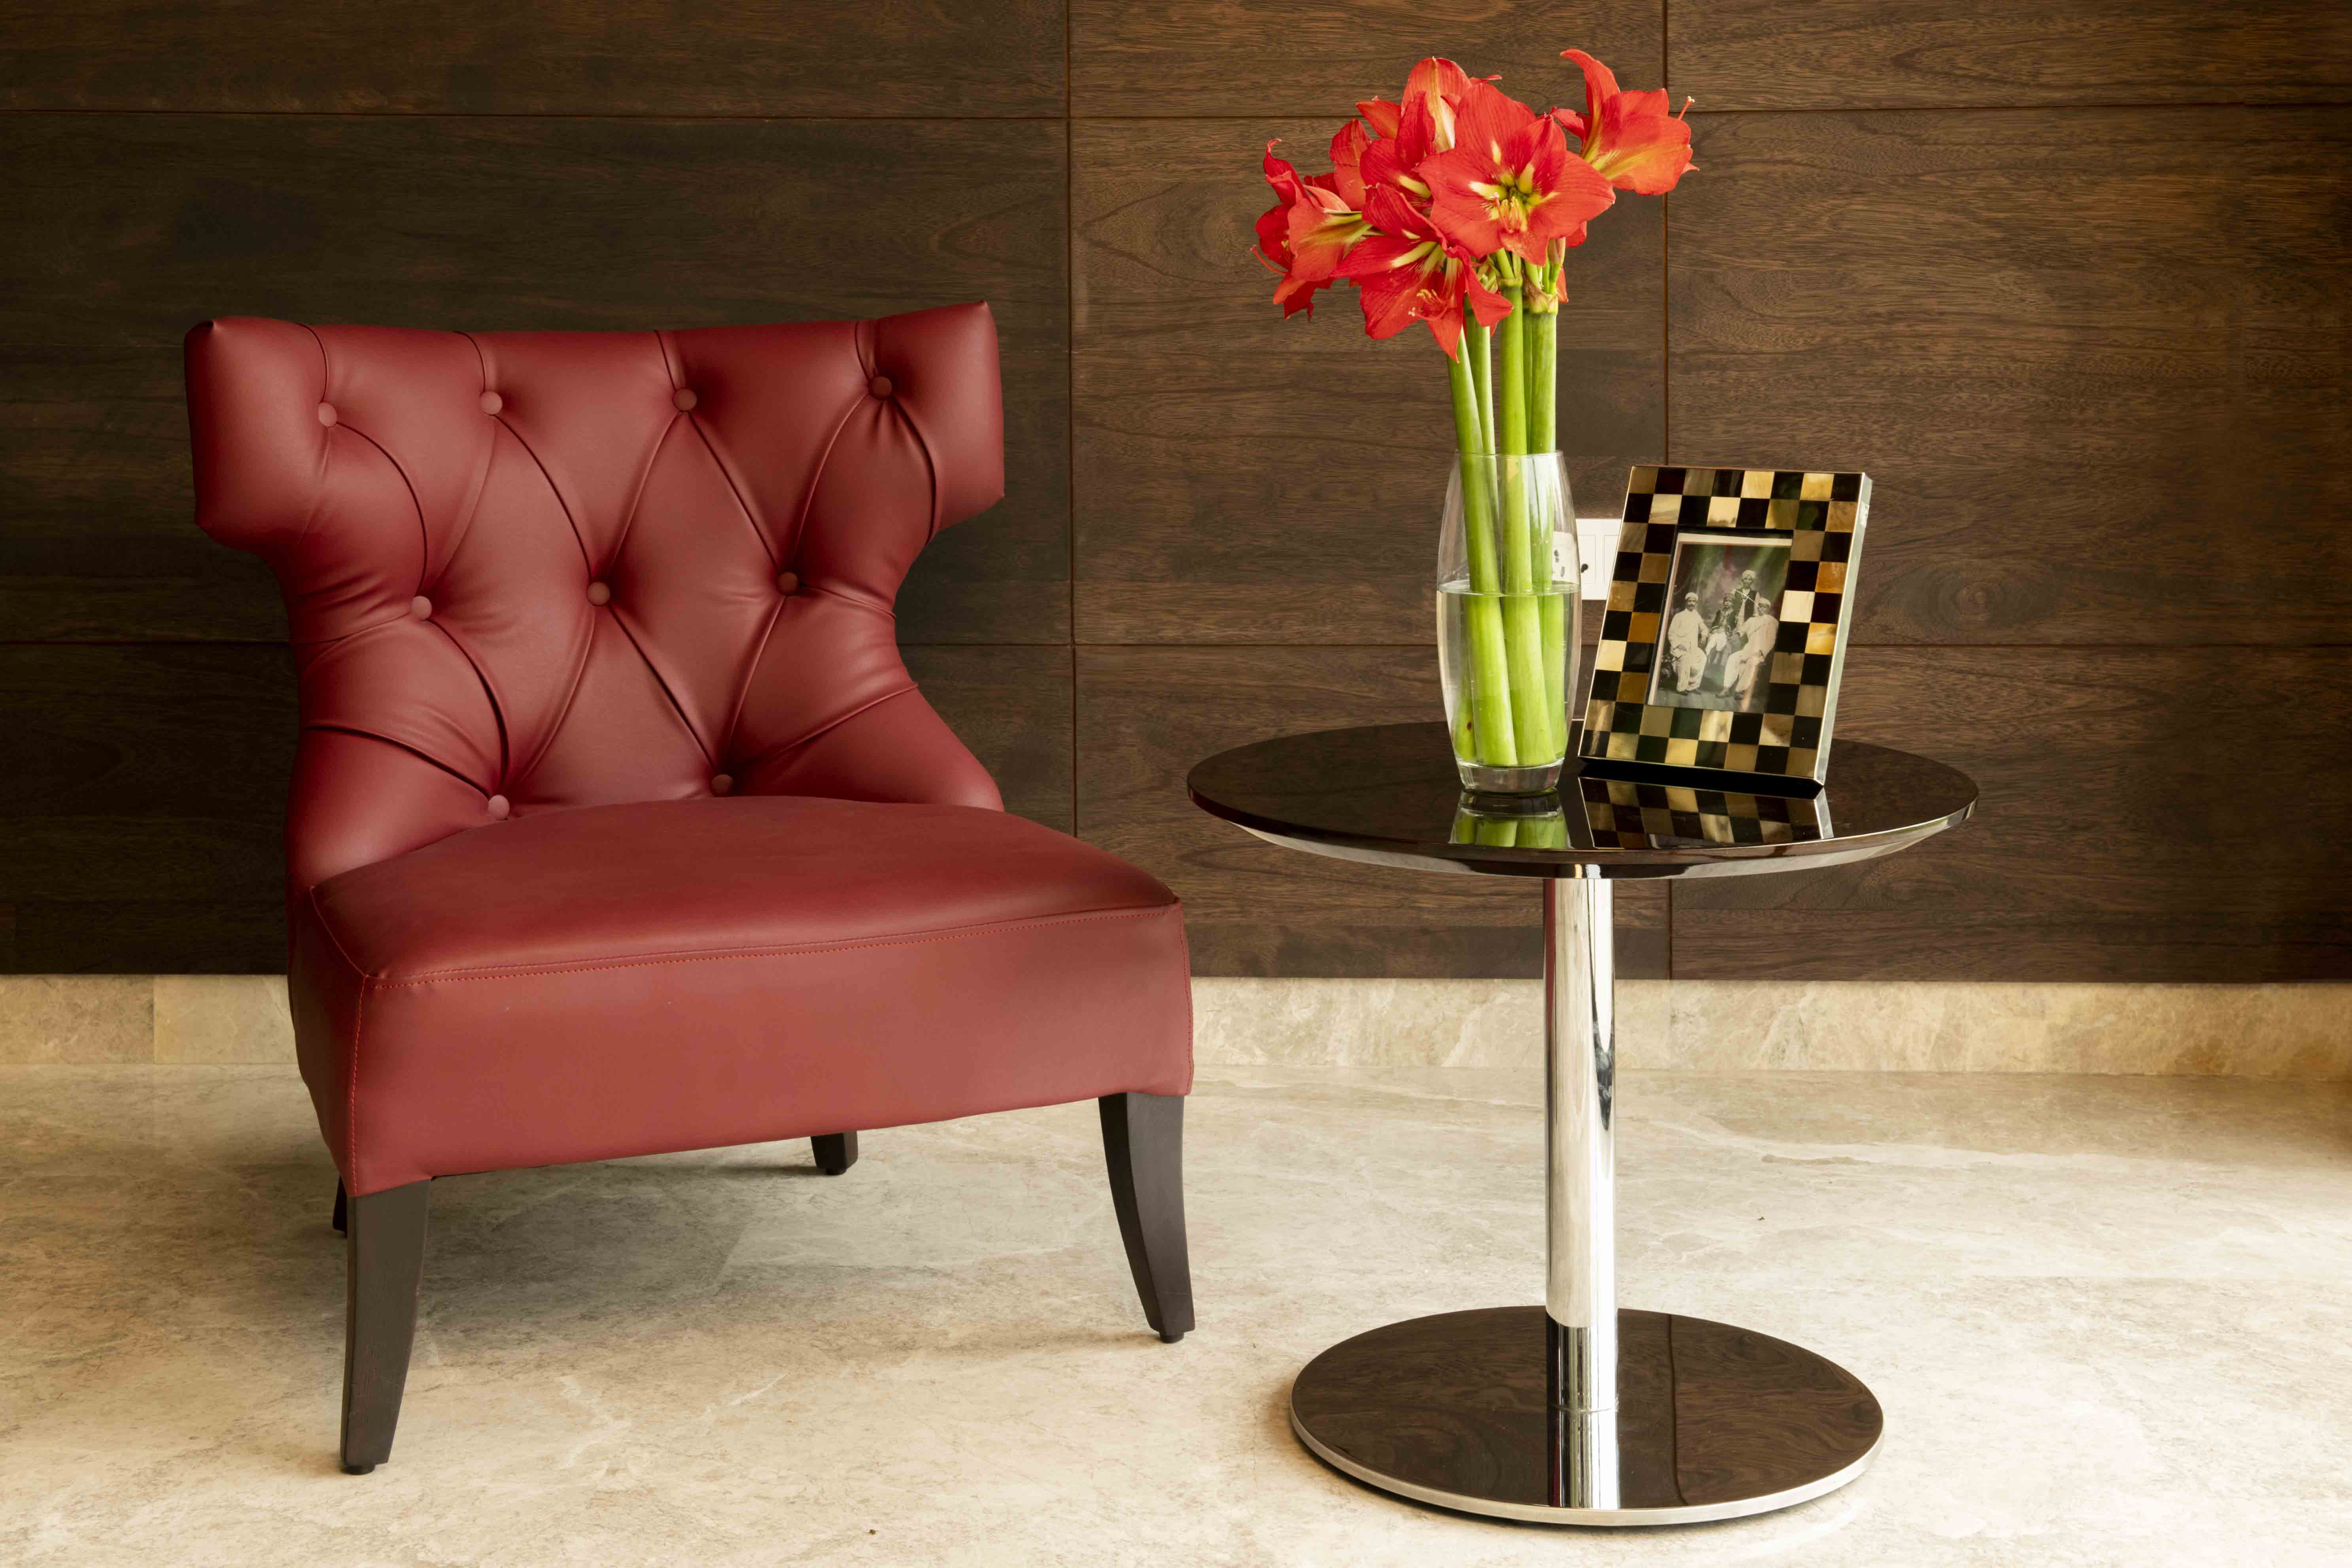 Red Berger Arm Chair For Valentine's Day From IDUS